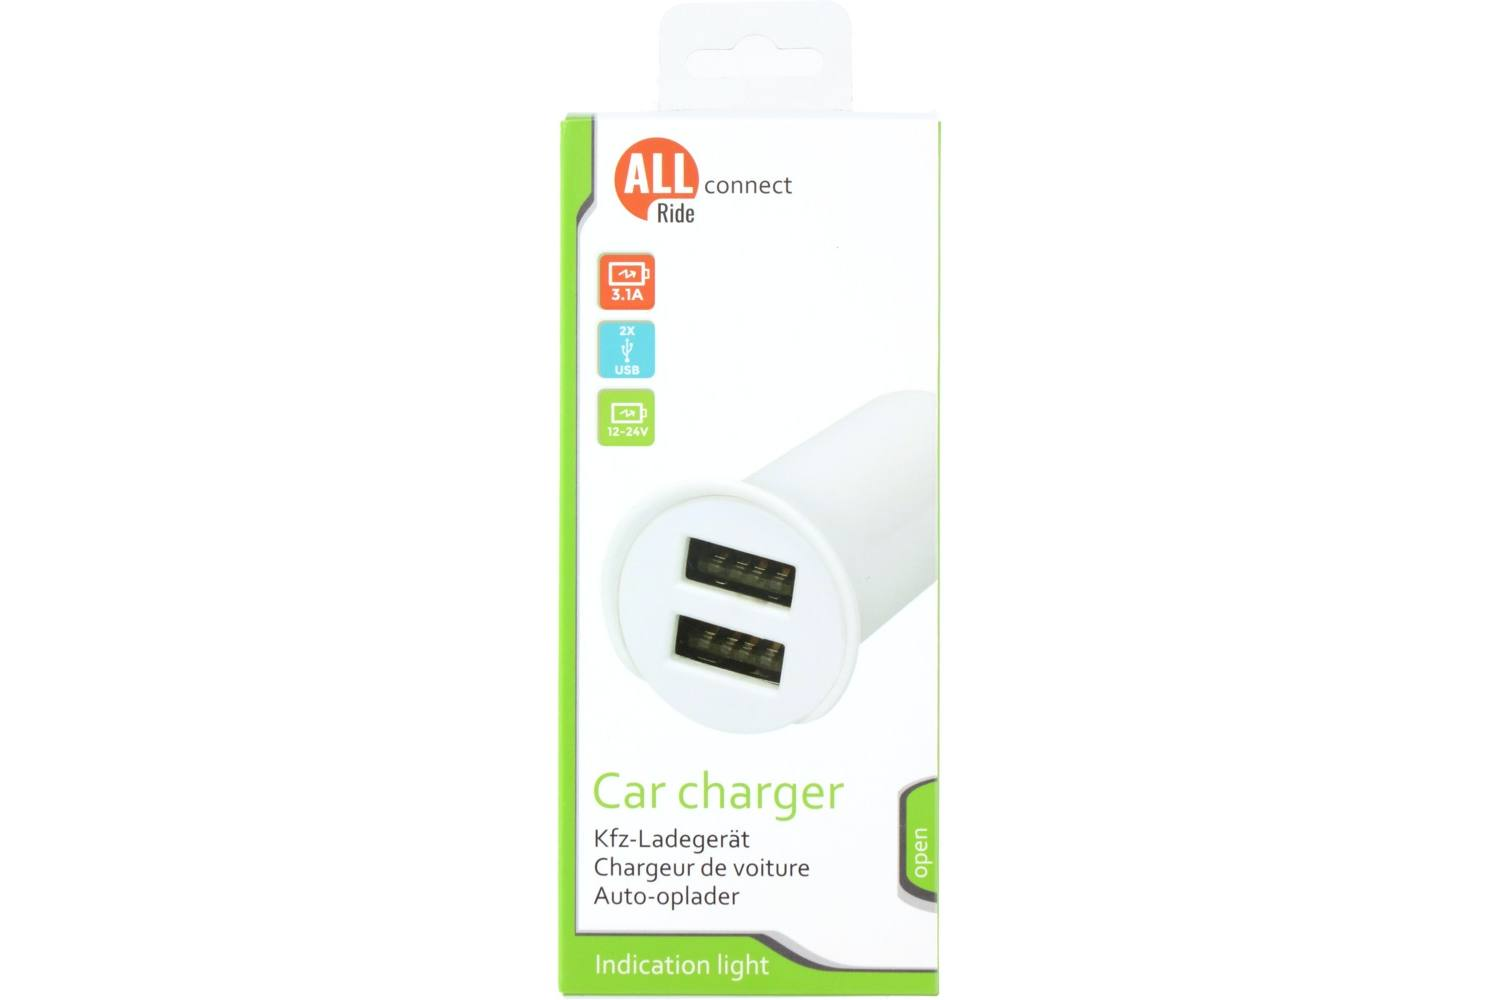 Car charger, AllRide, Connect, 3.1A, 12/24V, 2x USB A, white 2